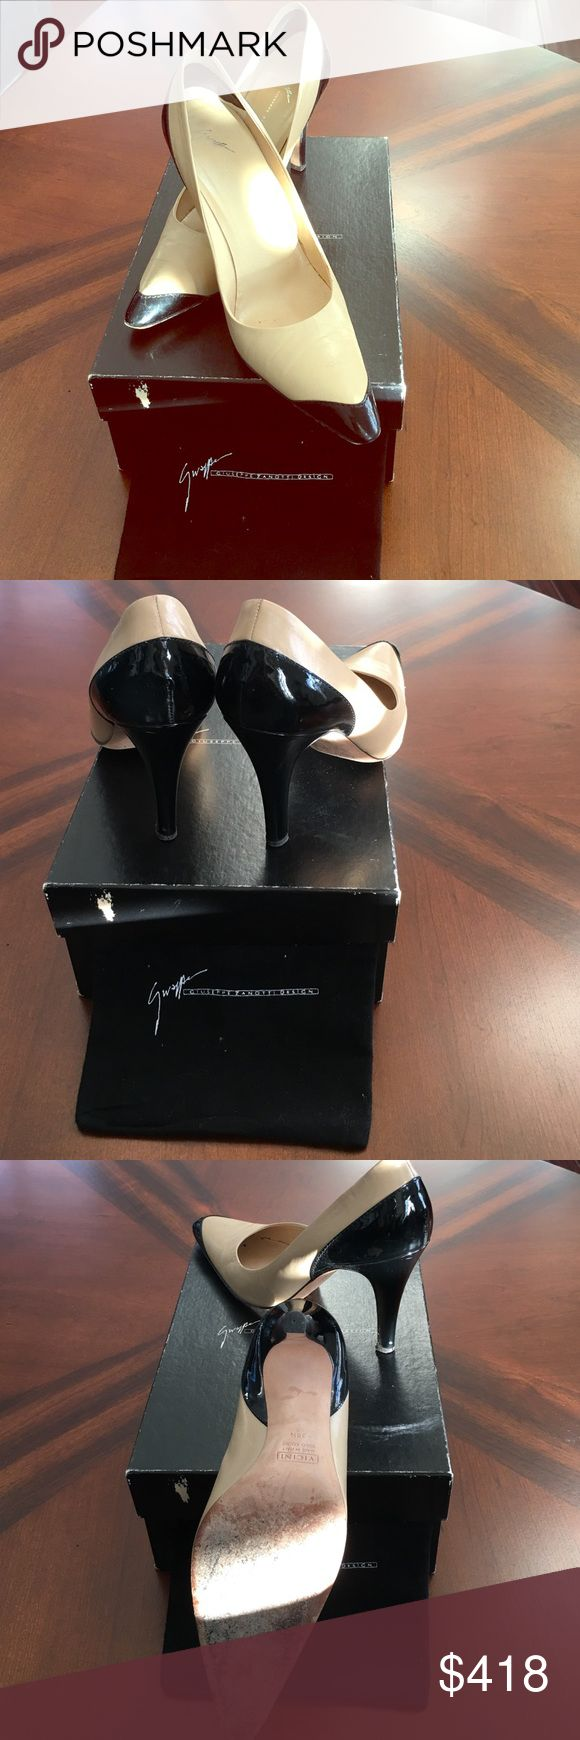 Giuseppe Zanotti Design Pumps Giuseppe Zanotti Design Pumps. Gently worn. Original box and dust bag. Giuseppe Zanotti Shoes Heels